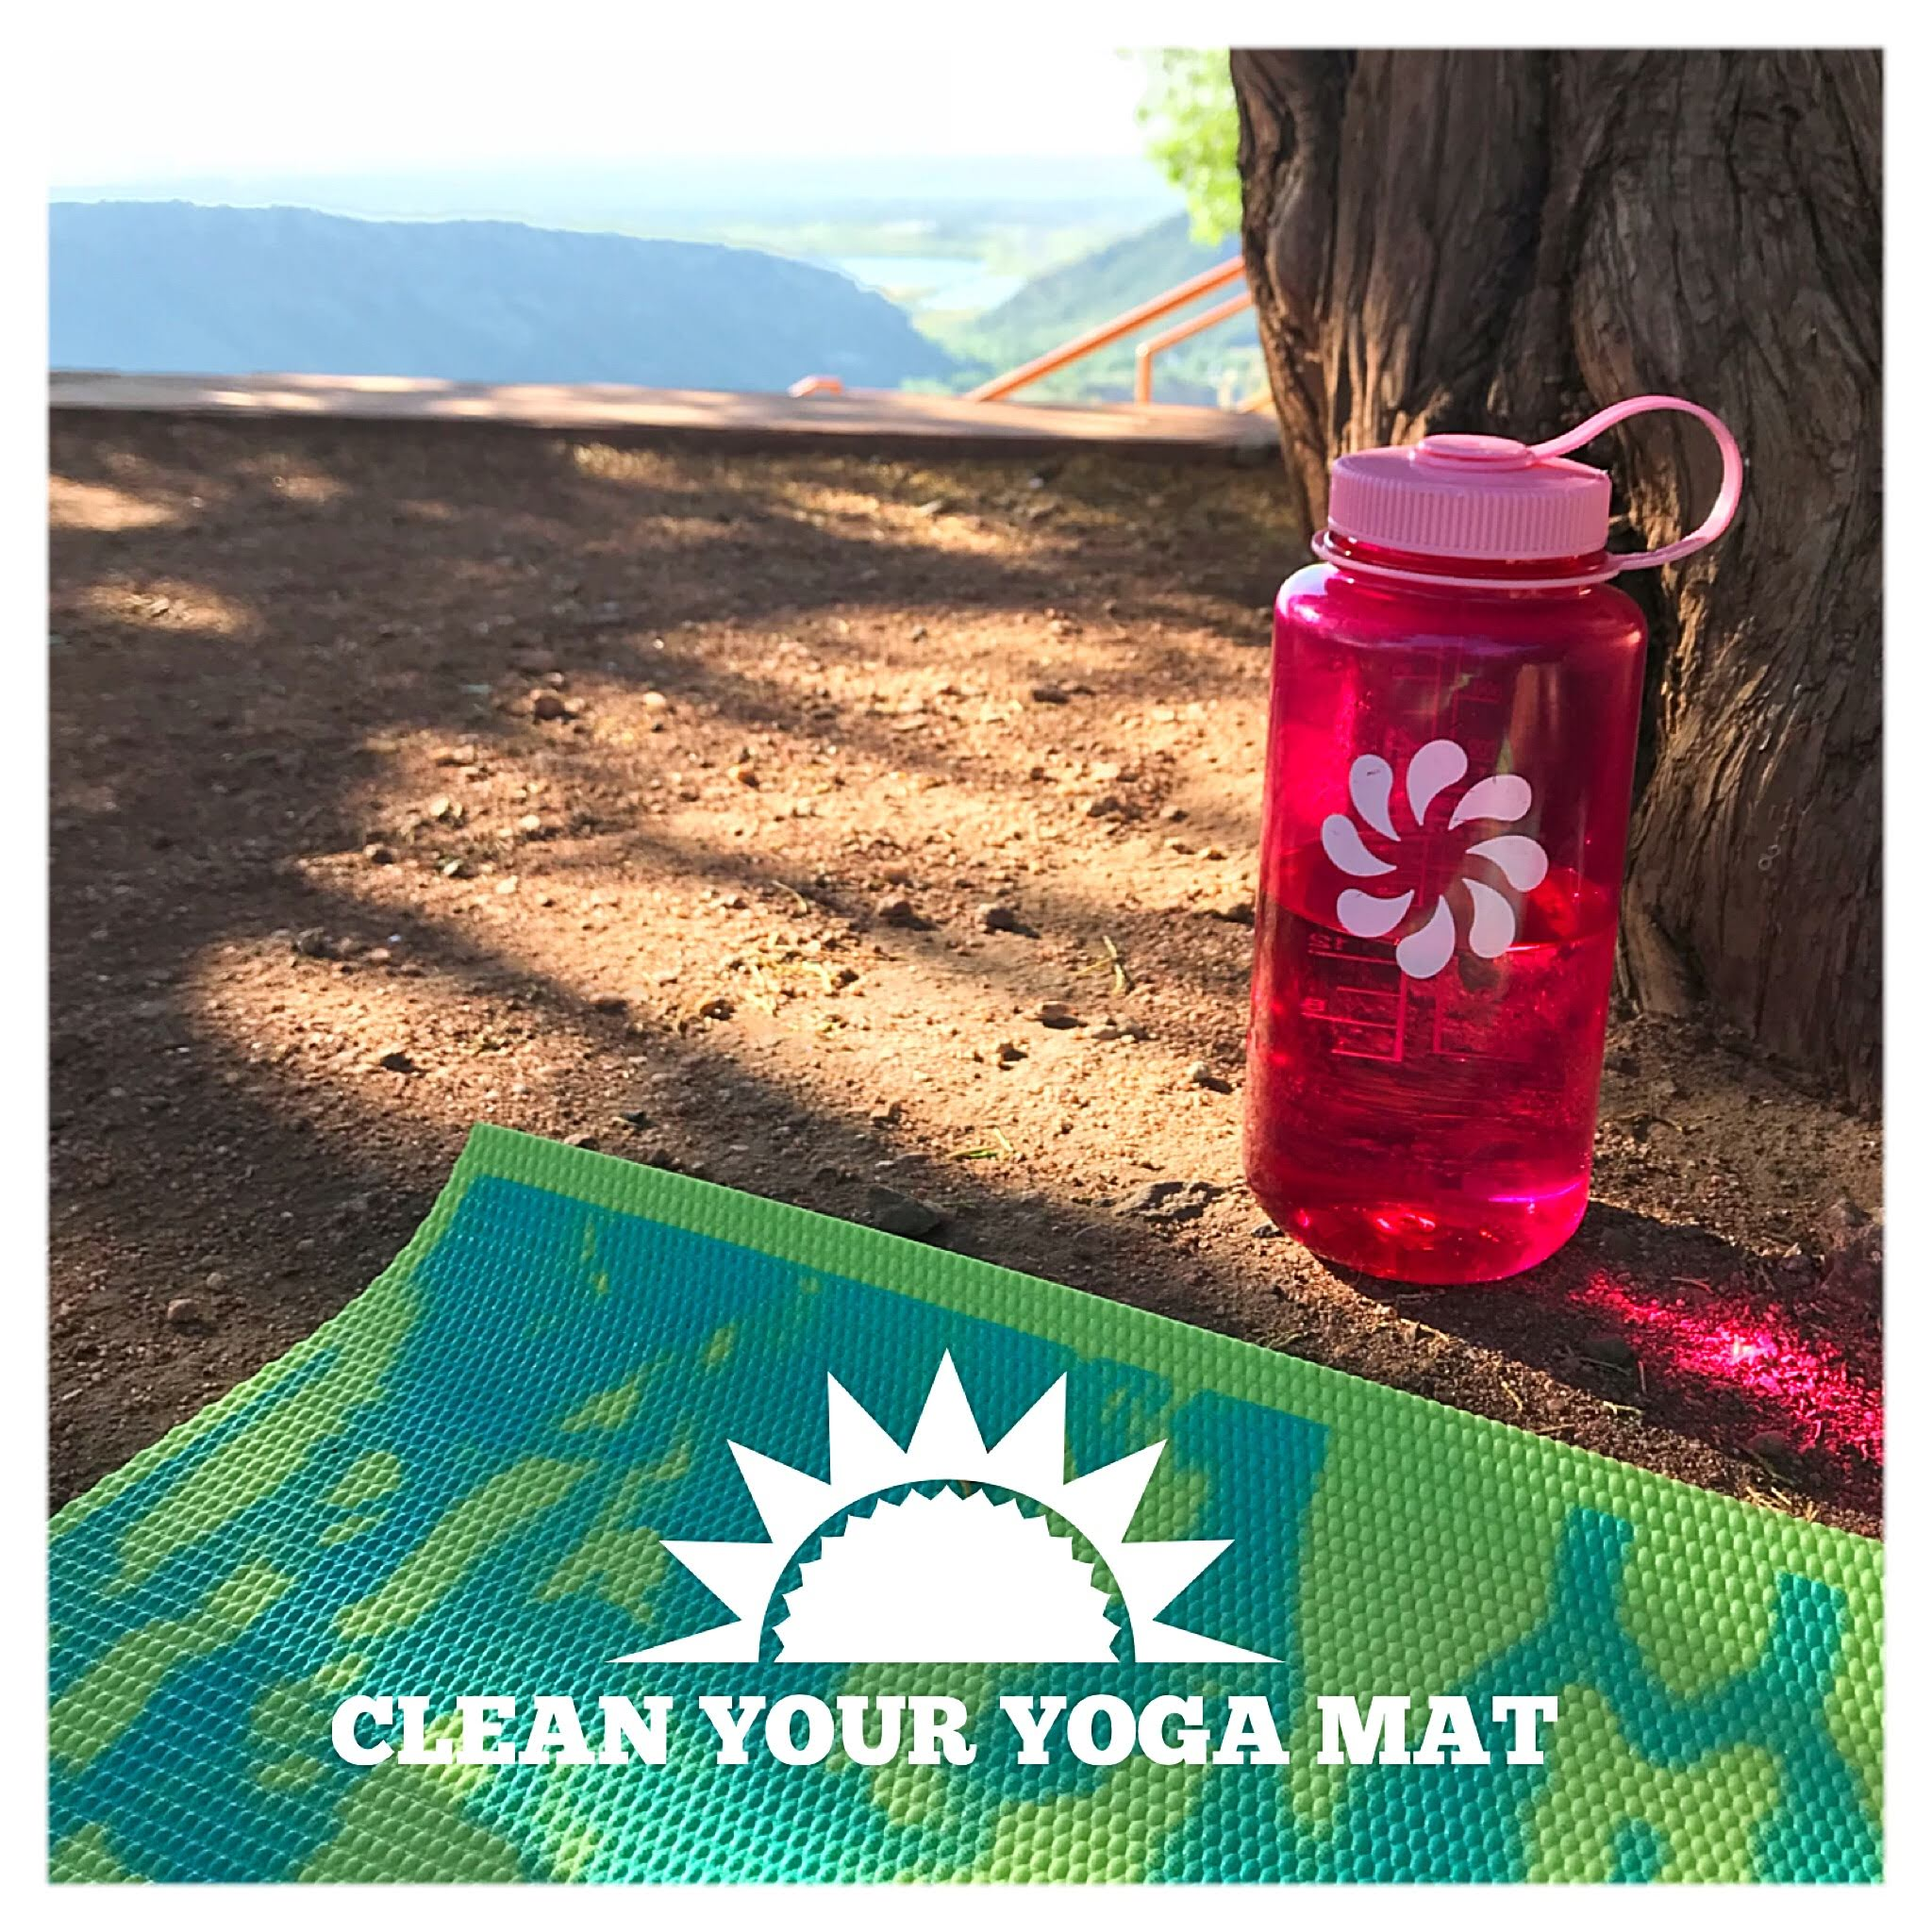 How to Clean a Yoga Mat